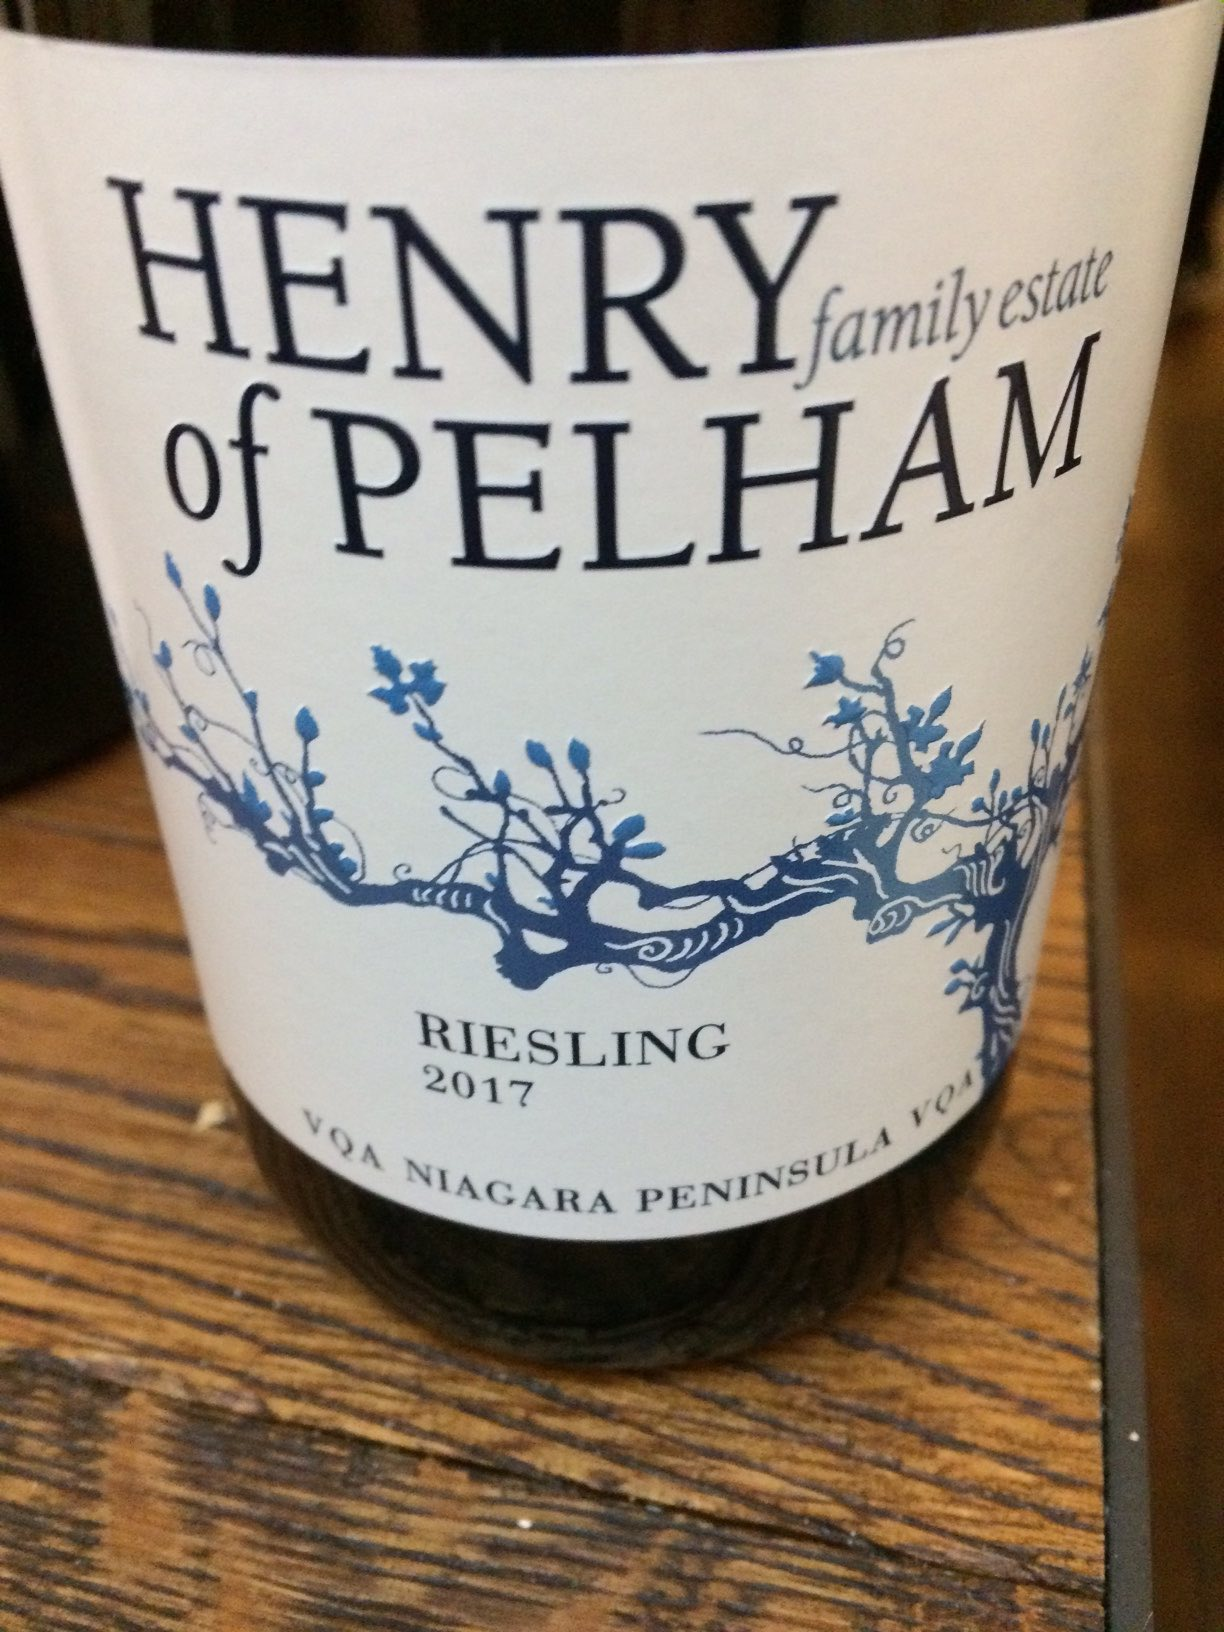 Henry of P Riesling 2017